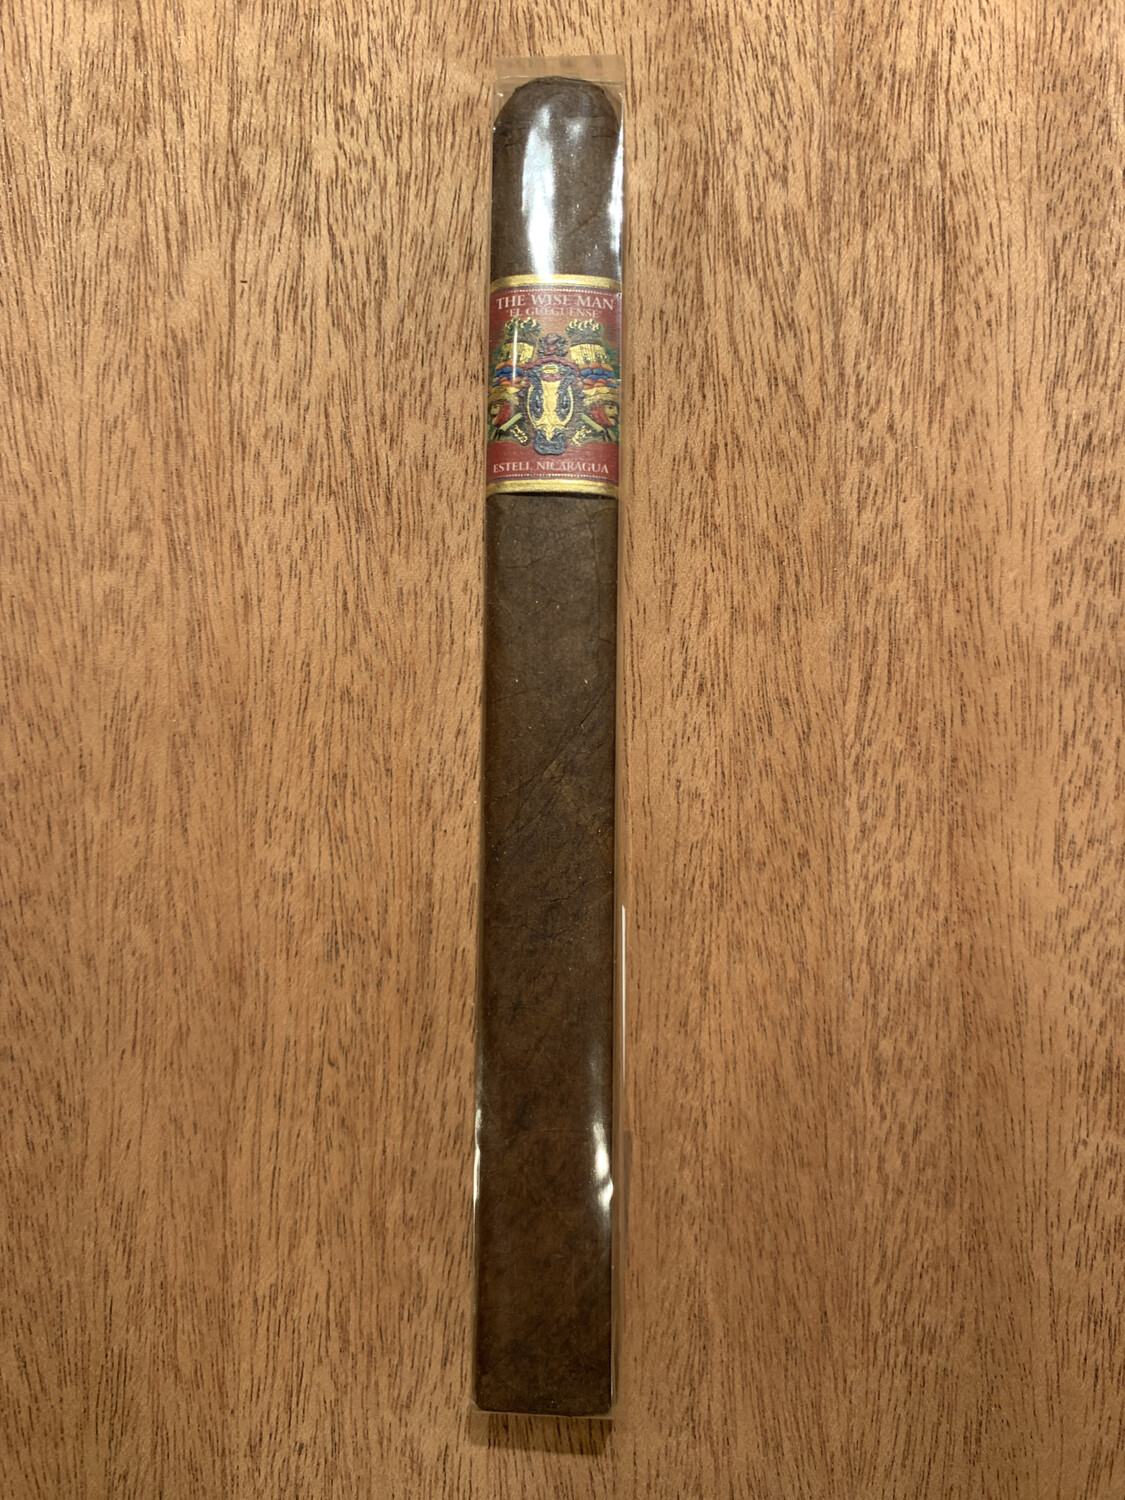 Foundation Wise Man Maduro Churchill